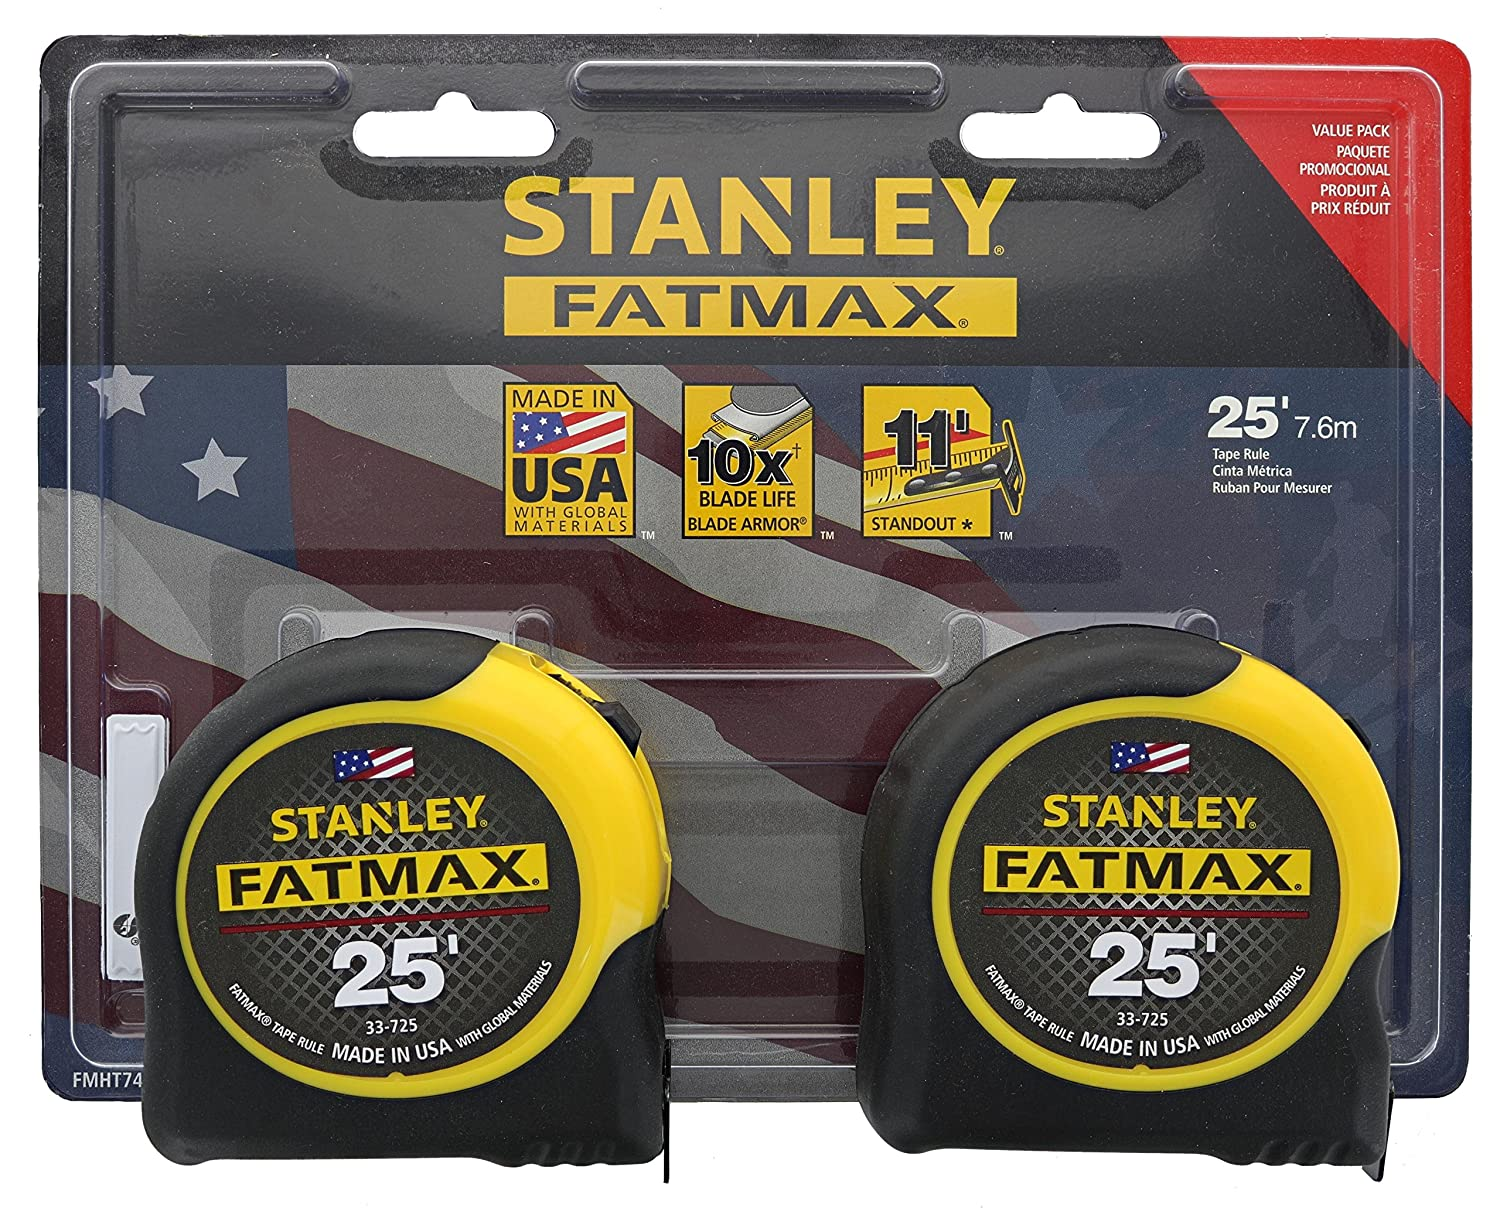 Stanley Consumer Tools FMHT74038 25' Fatmax Tape Measure 2 Pack